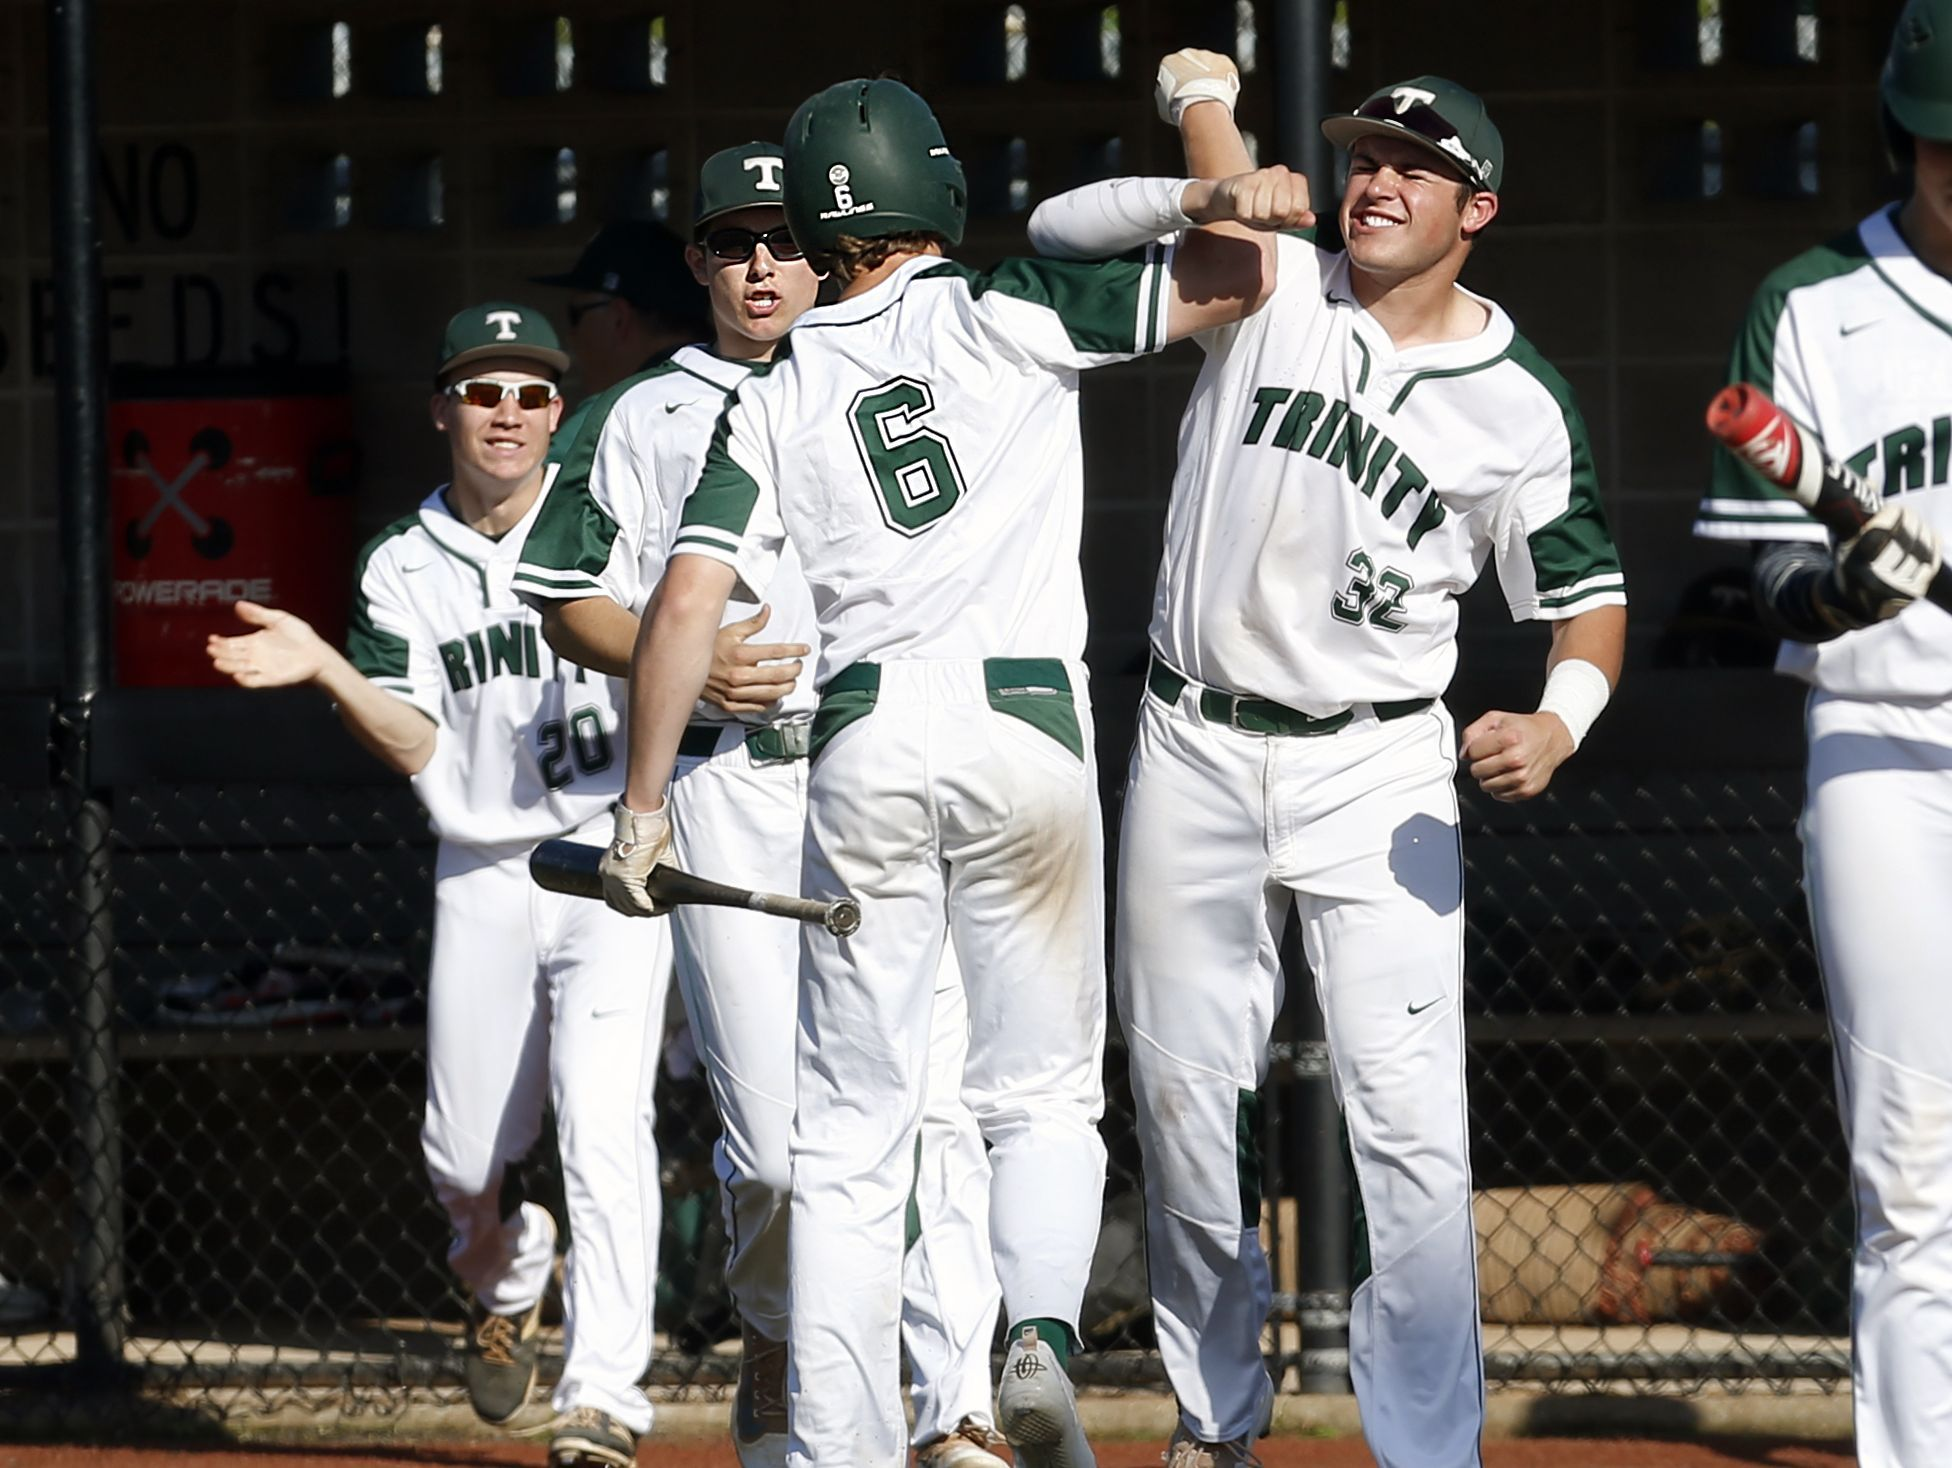 Trinity's Matt Higgins celebrates with his team after scoring a run against St. X. May 13, 2016